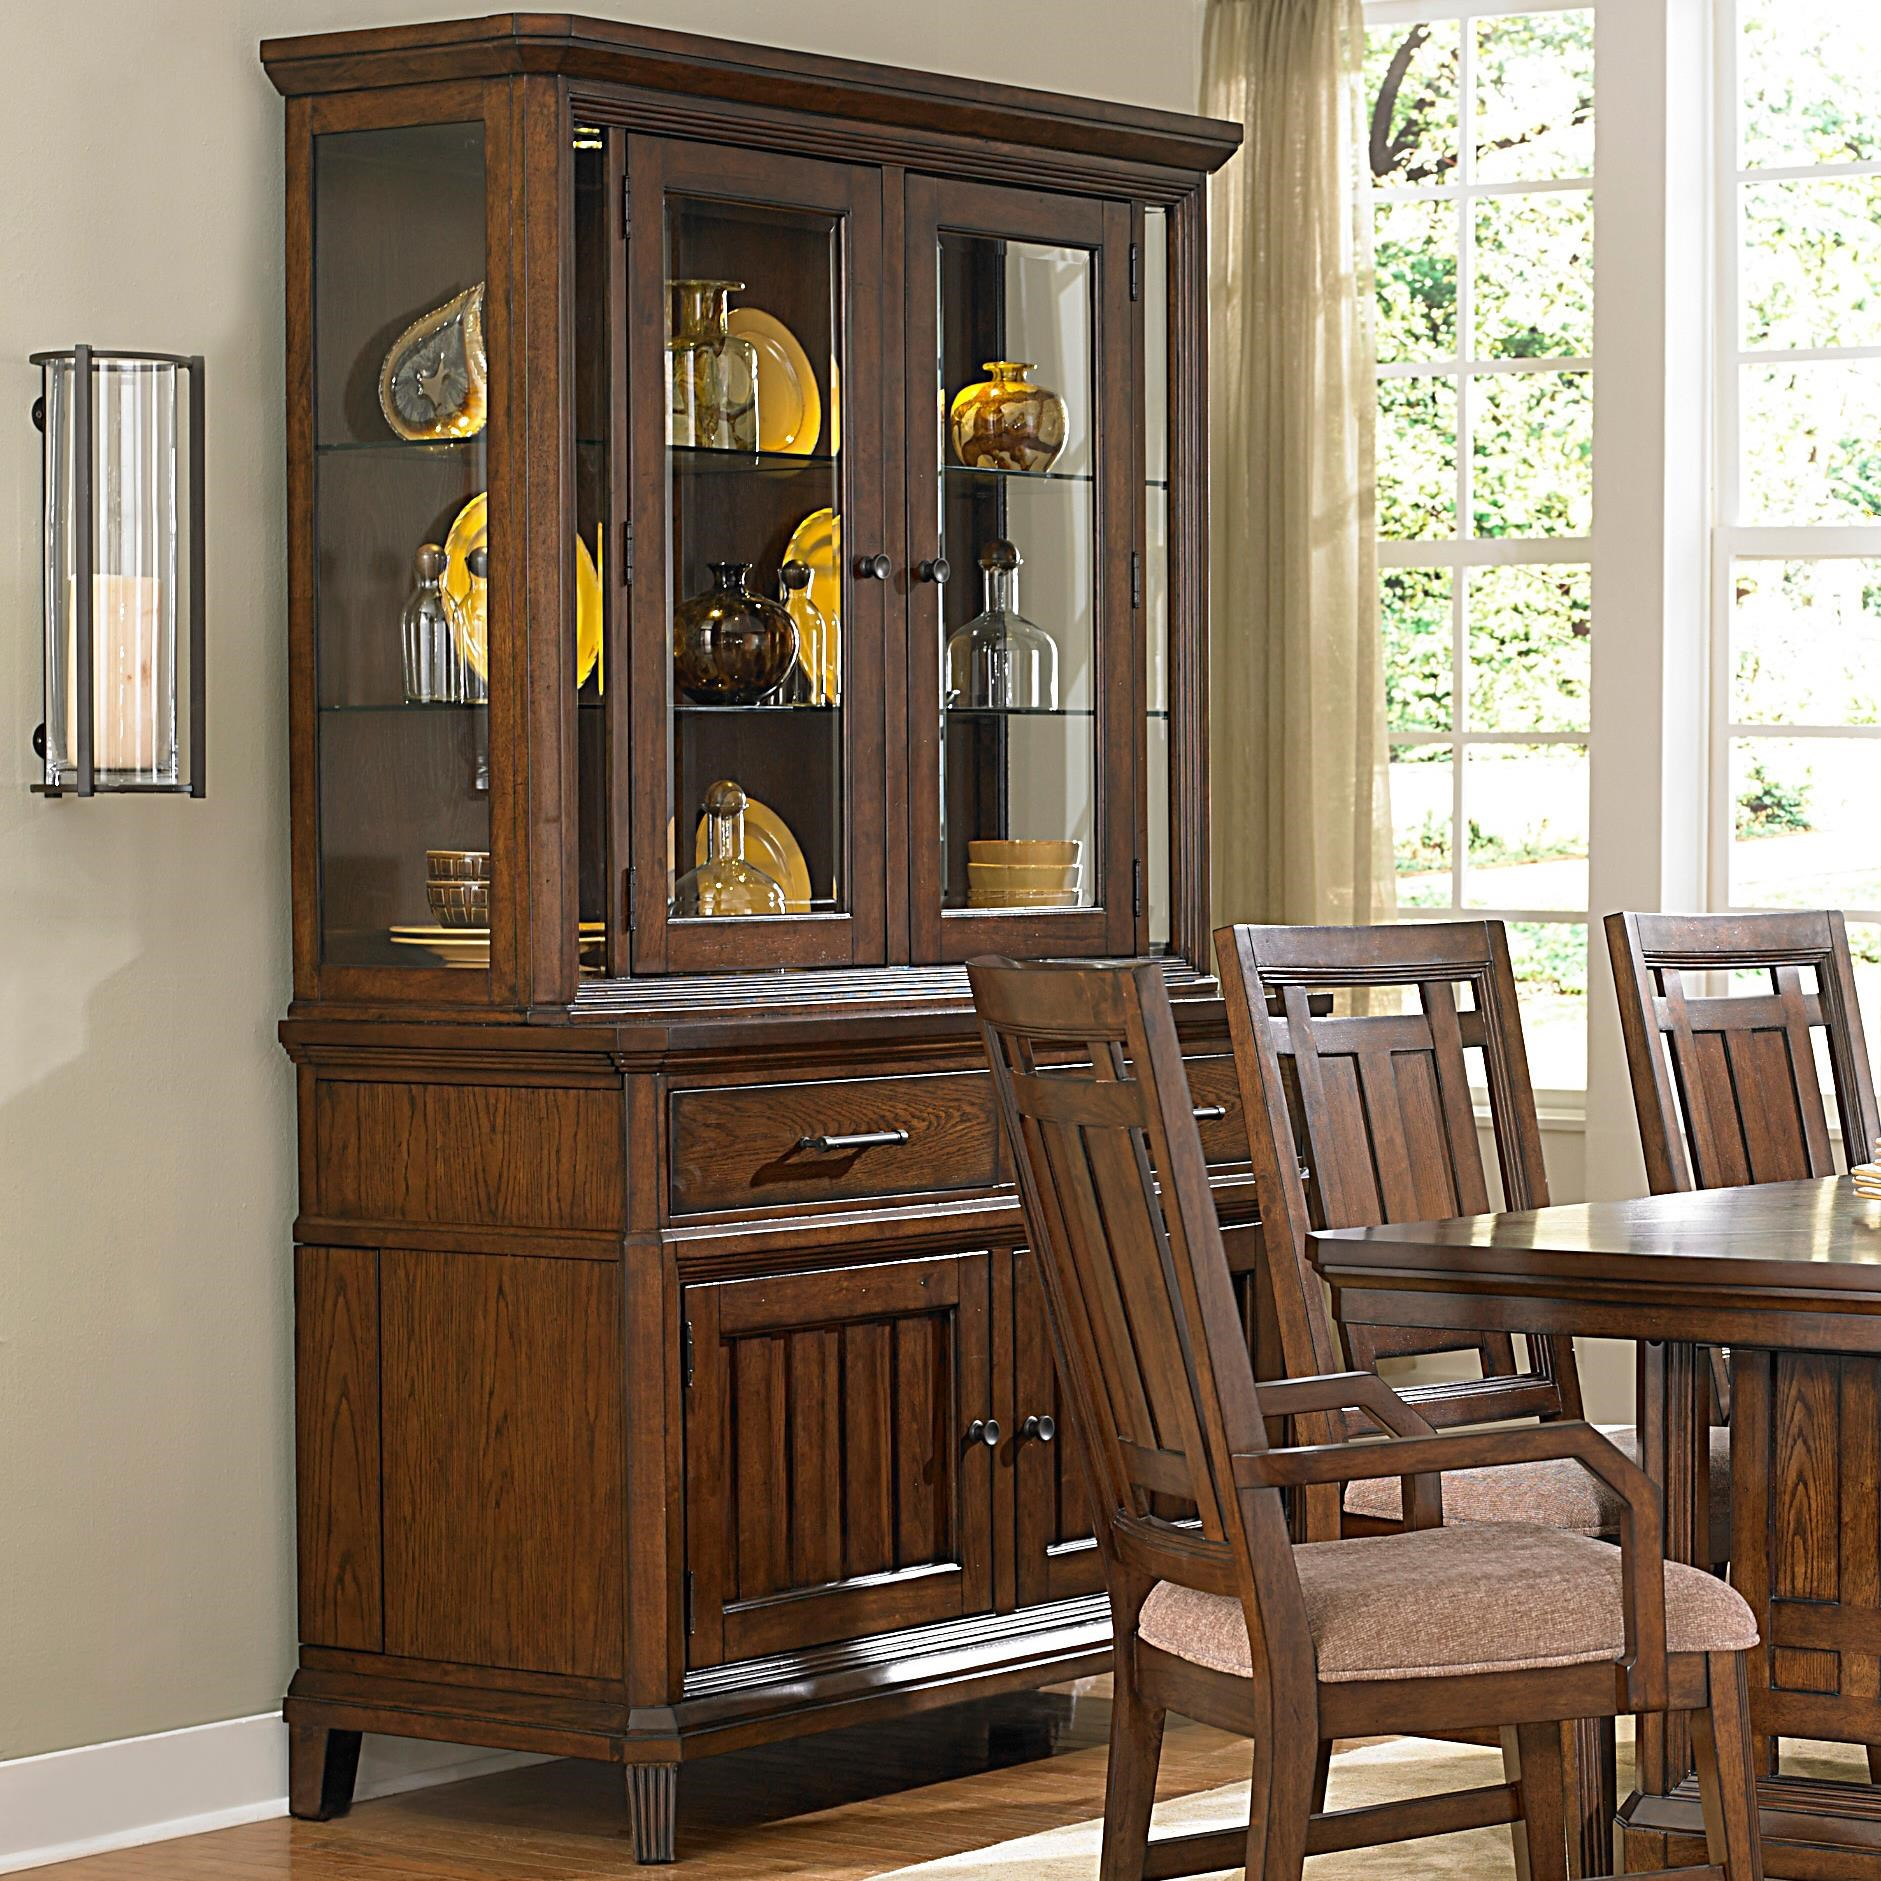 Broyhill Furniture Estes ParkChina Cabinet ...